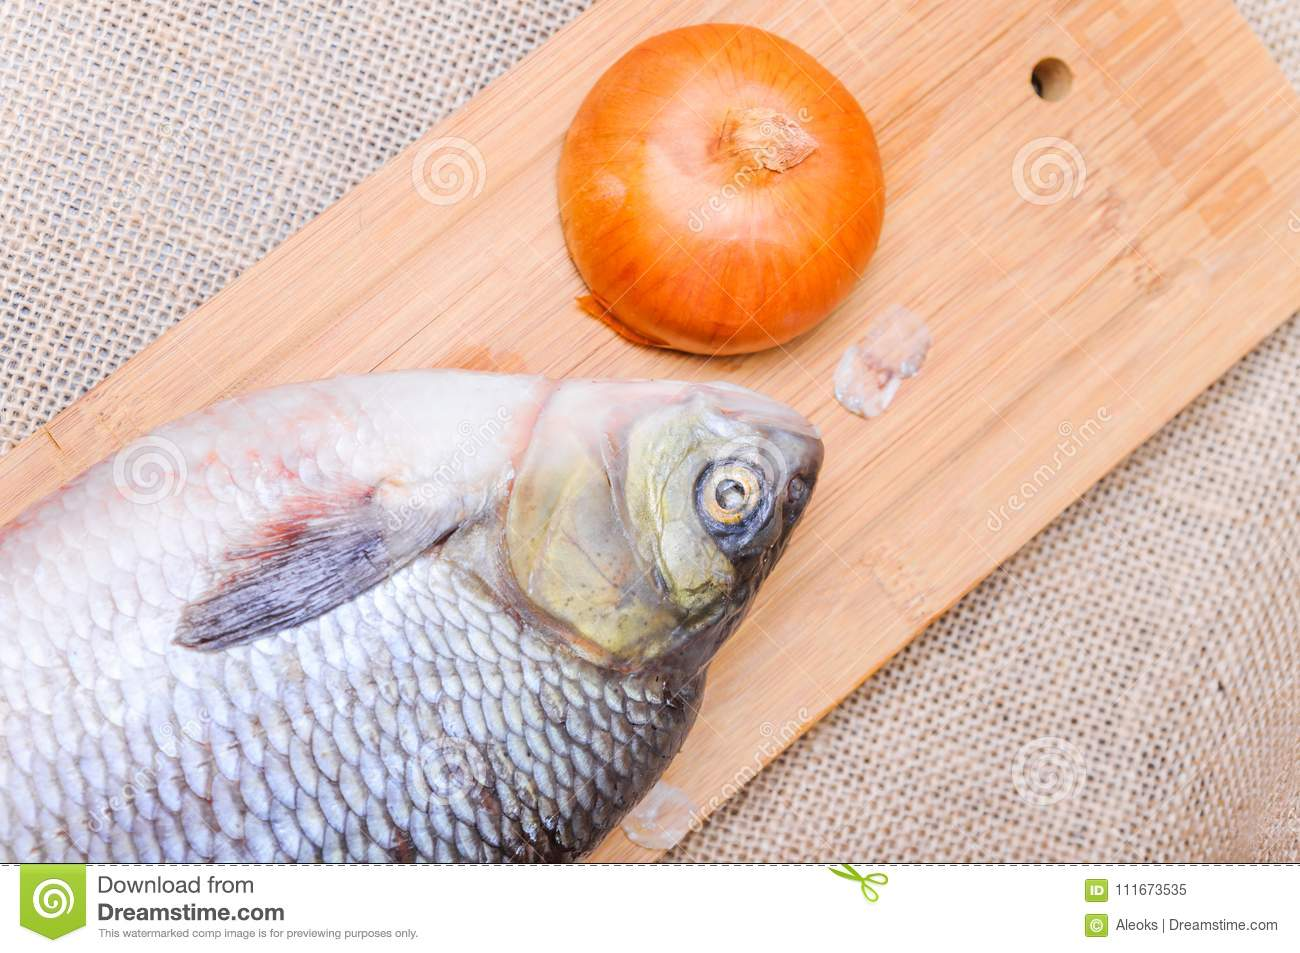 What does a raw fish dream about